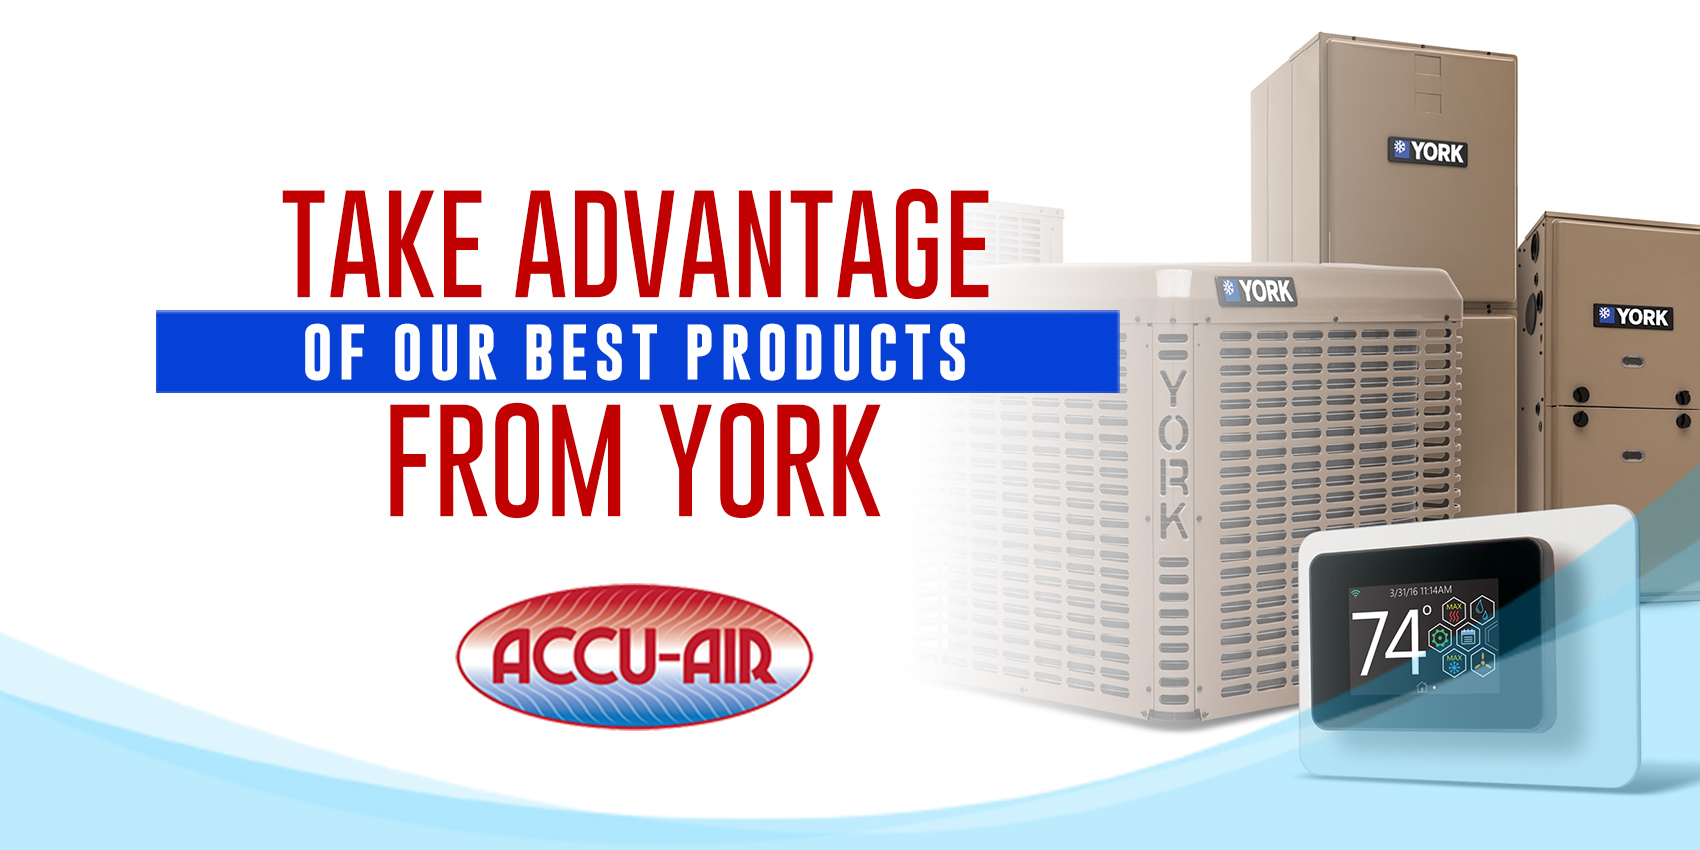 Take Advantage of Our Best Products from YORK